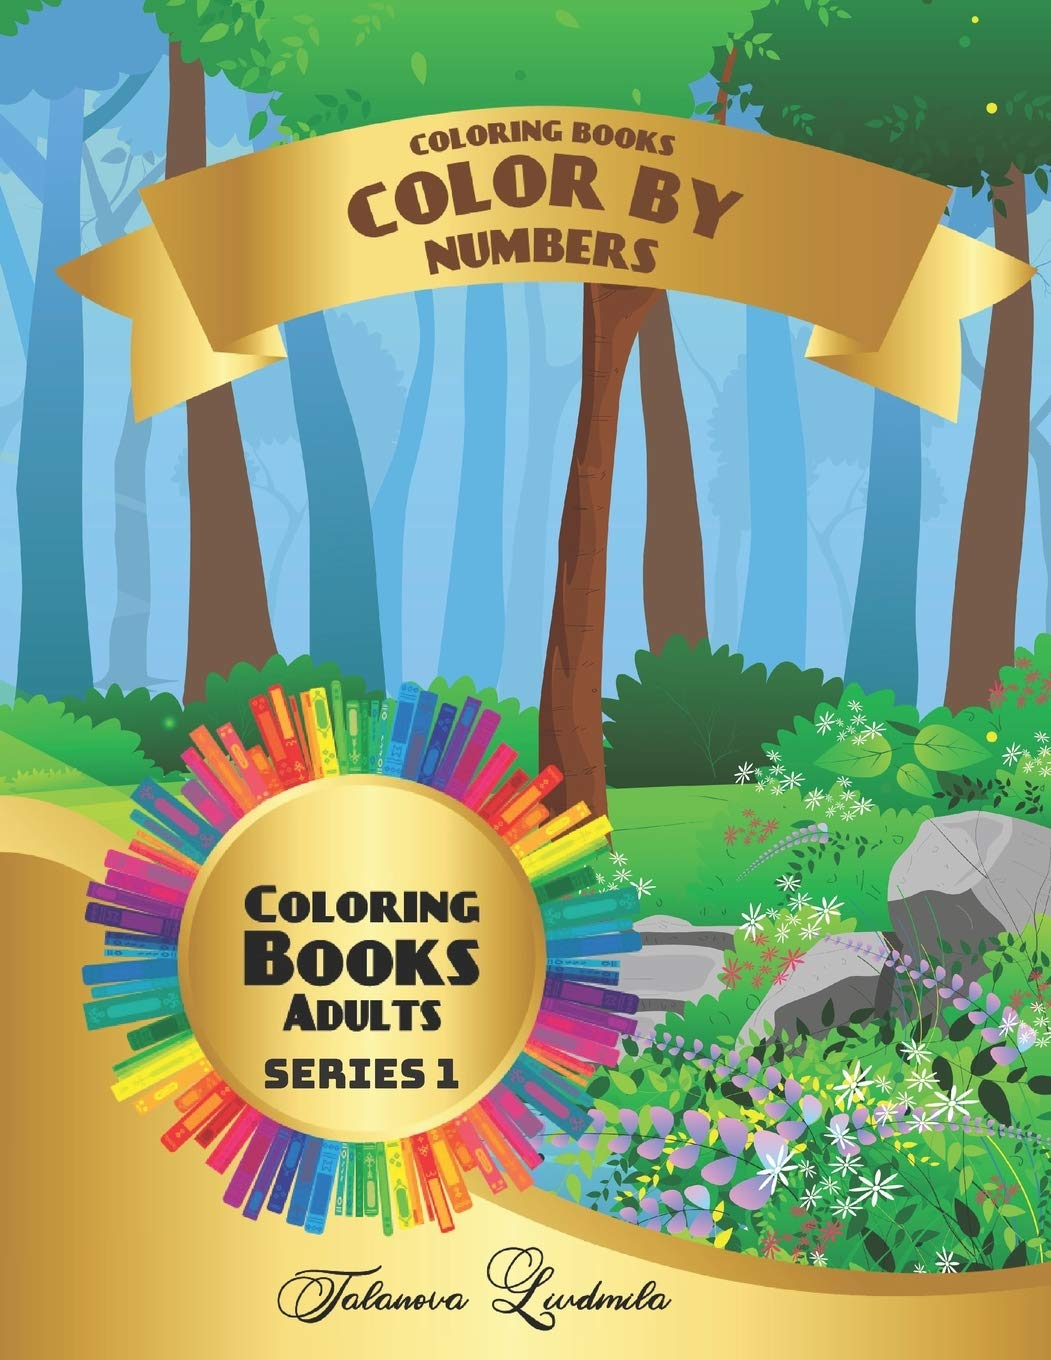 Coloring Books Color By Numbers Adults Coloring With Numbers Worksheets Color By Numbers For Adults With Colored Pencils Advanced Color By Numbers Talanova Liudmila 9781654172893 Amazon Com Books